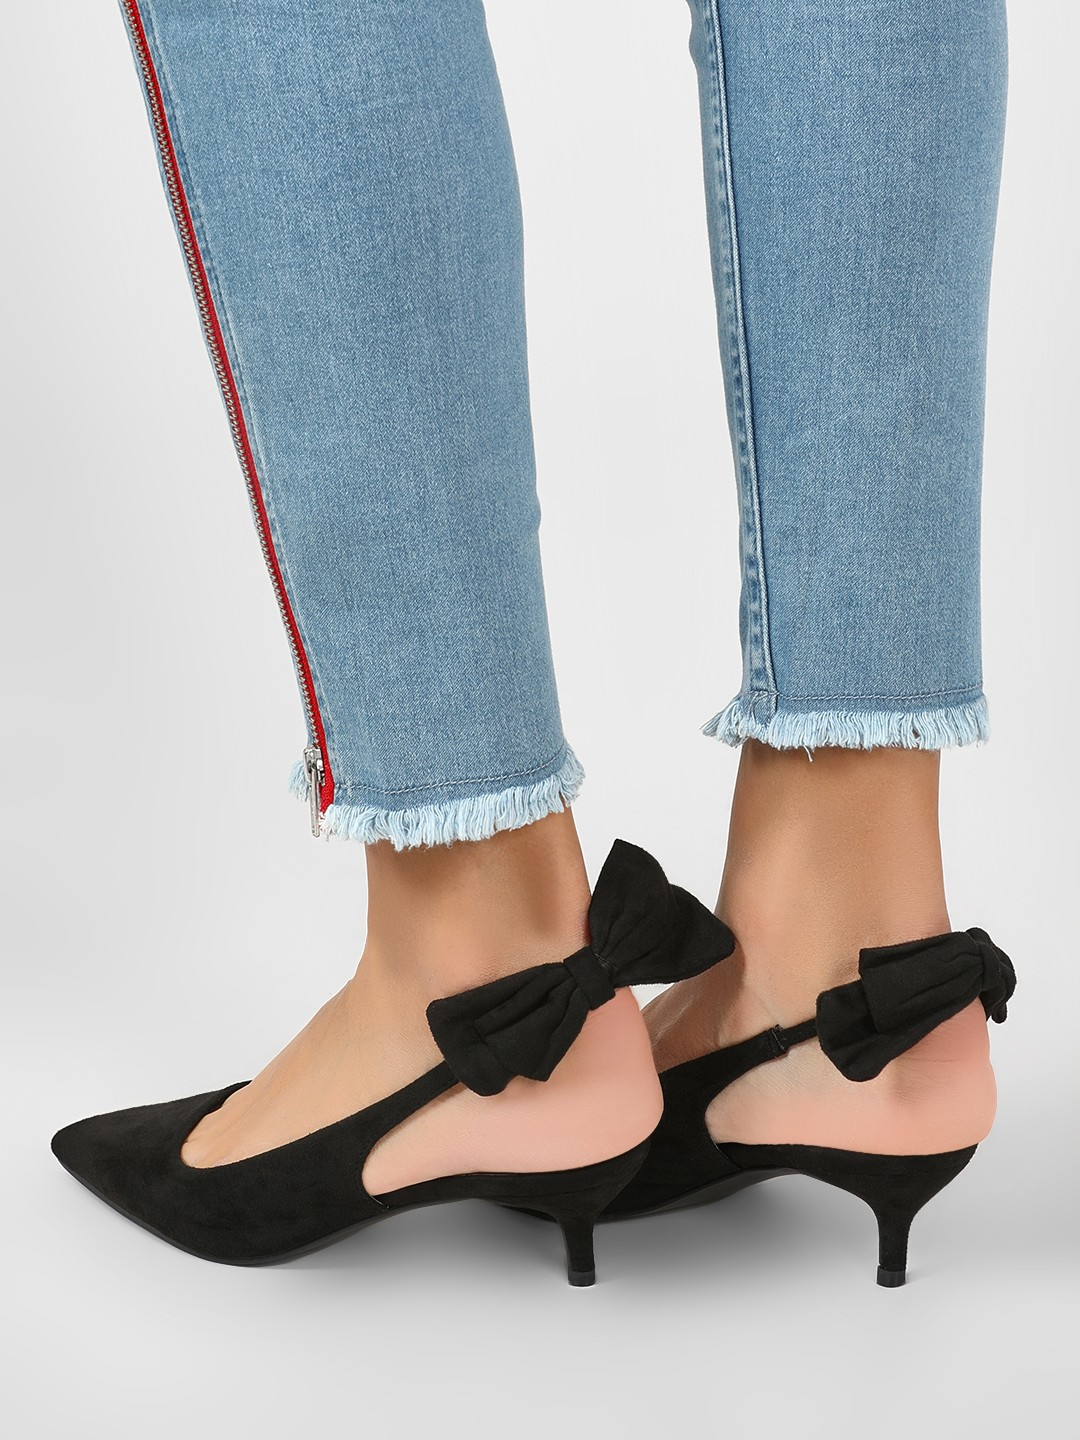 Intoto Black Kitten Heels With Bow Detail 1